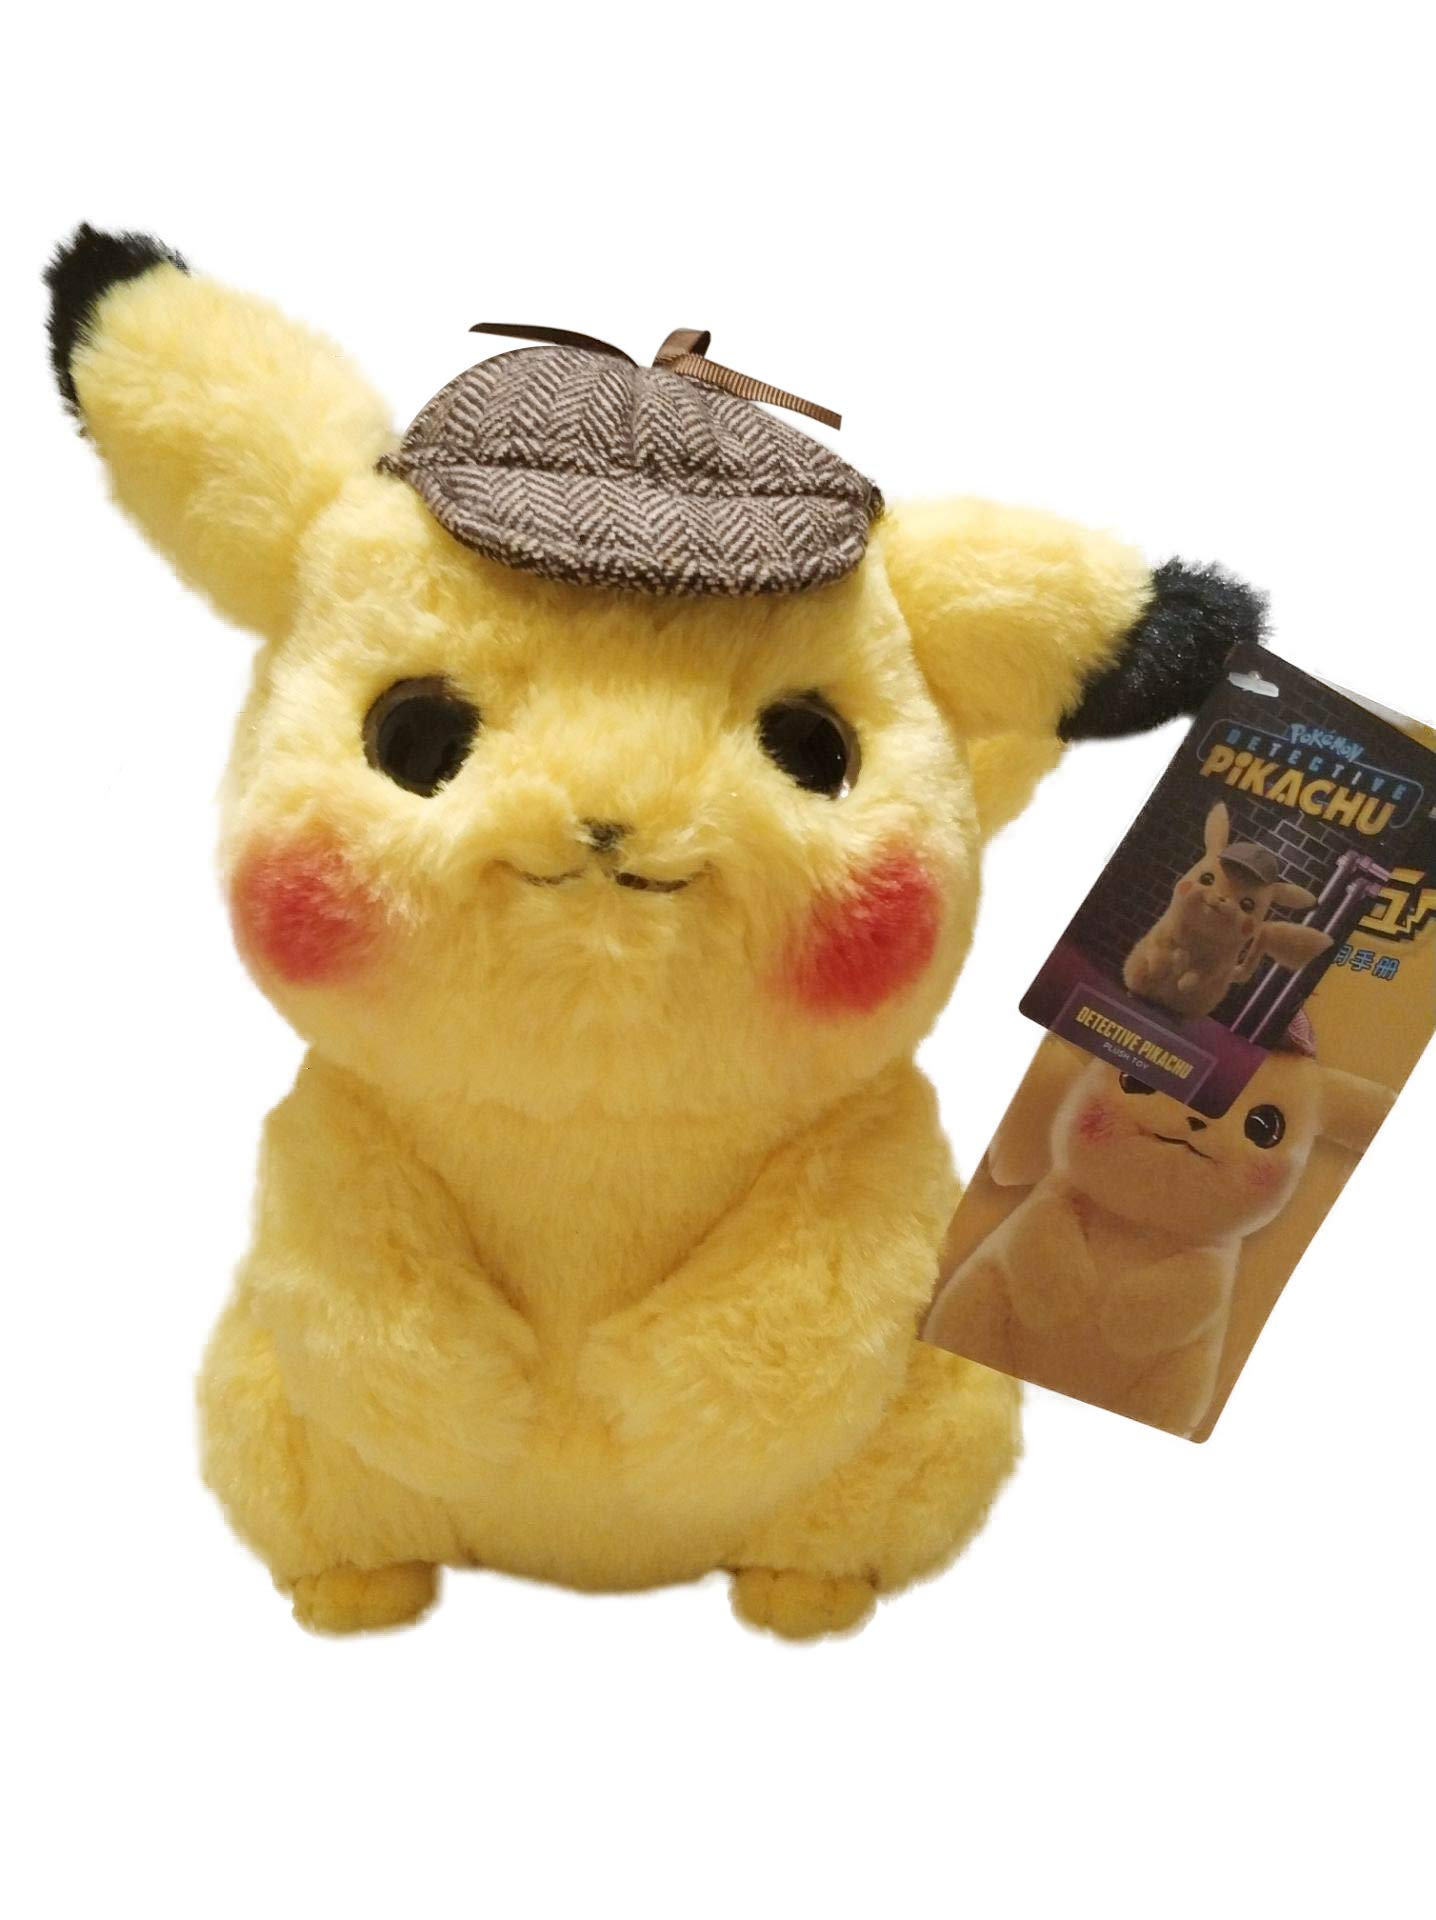 Vabao Detective Pikachu Plush Stuffed Animal Toy - 11'' Come with Brush~ by Vabao